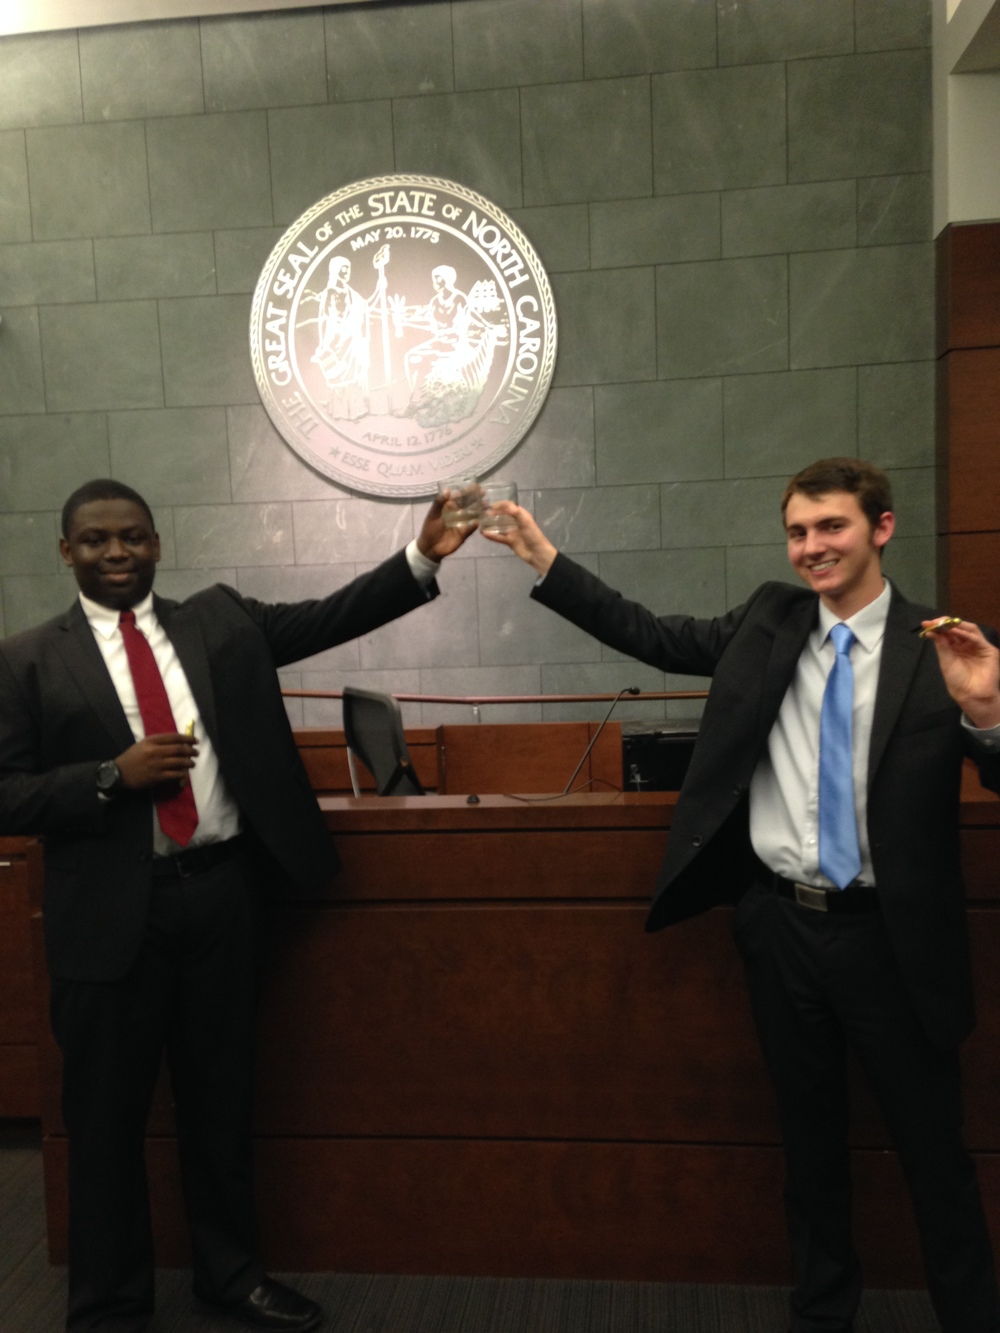 All-American Redirects competitors Imokhai Okolo and Henry Leaman after winning outstanding attorney awards at the Tobacco Road Invitational.